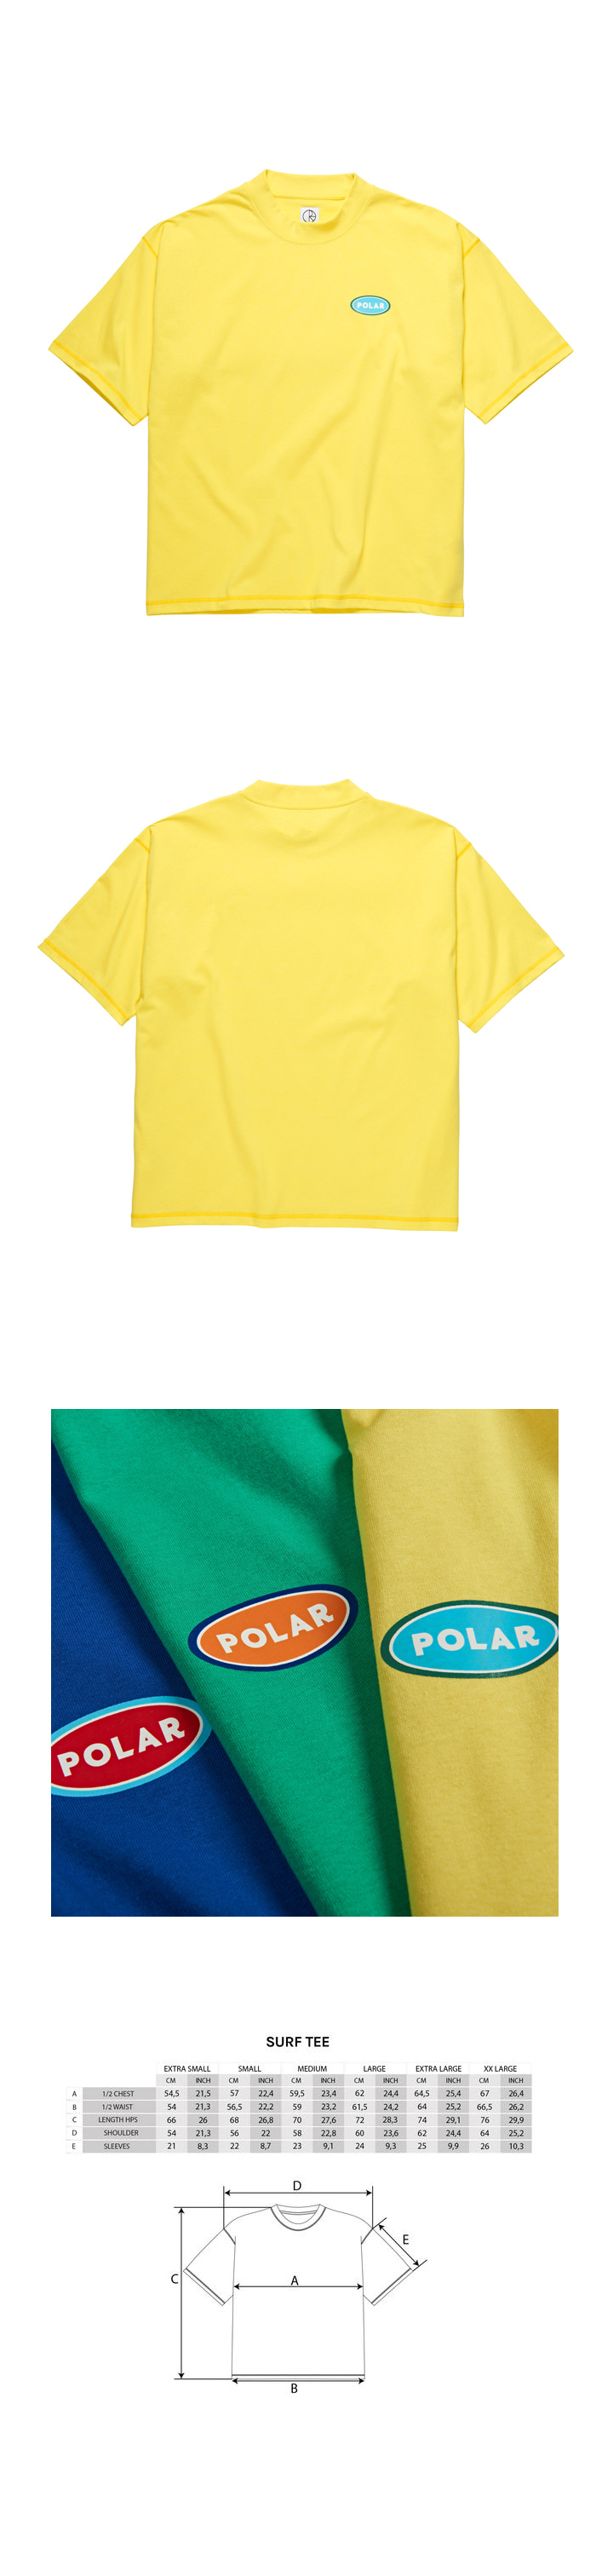 폴라(POLAR) Station Logo Surf Tee - Yellow